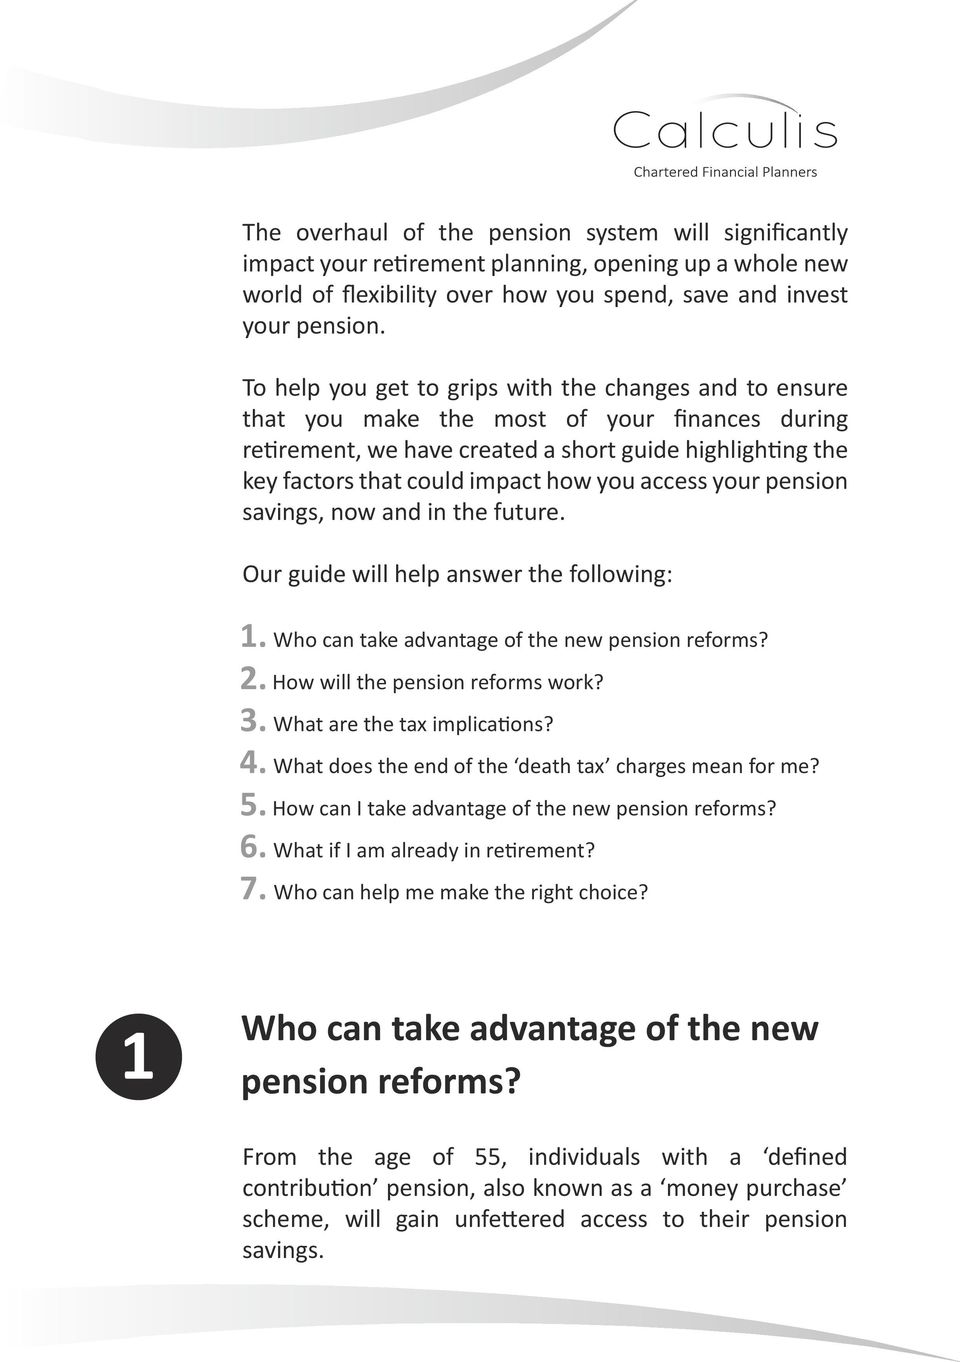 access your pension savings, now and in the future. Our guide will help answer the following: 1. Who can take advantage of the new pension reforms? 2. How will the pension reforms work? 3.